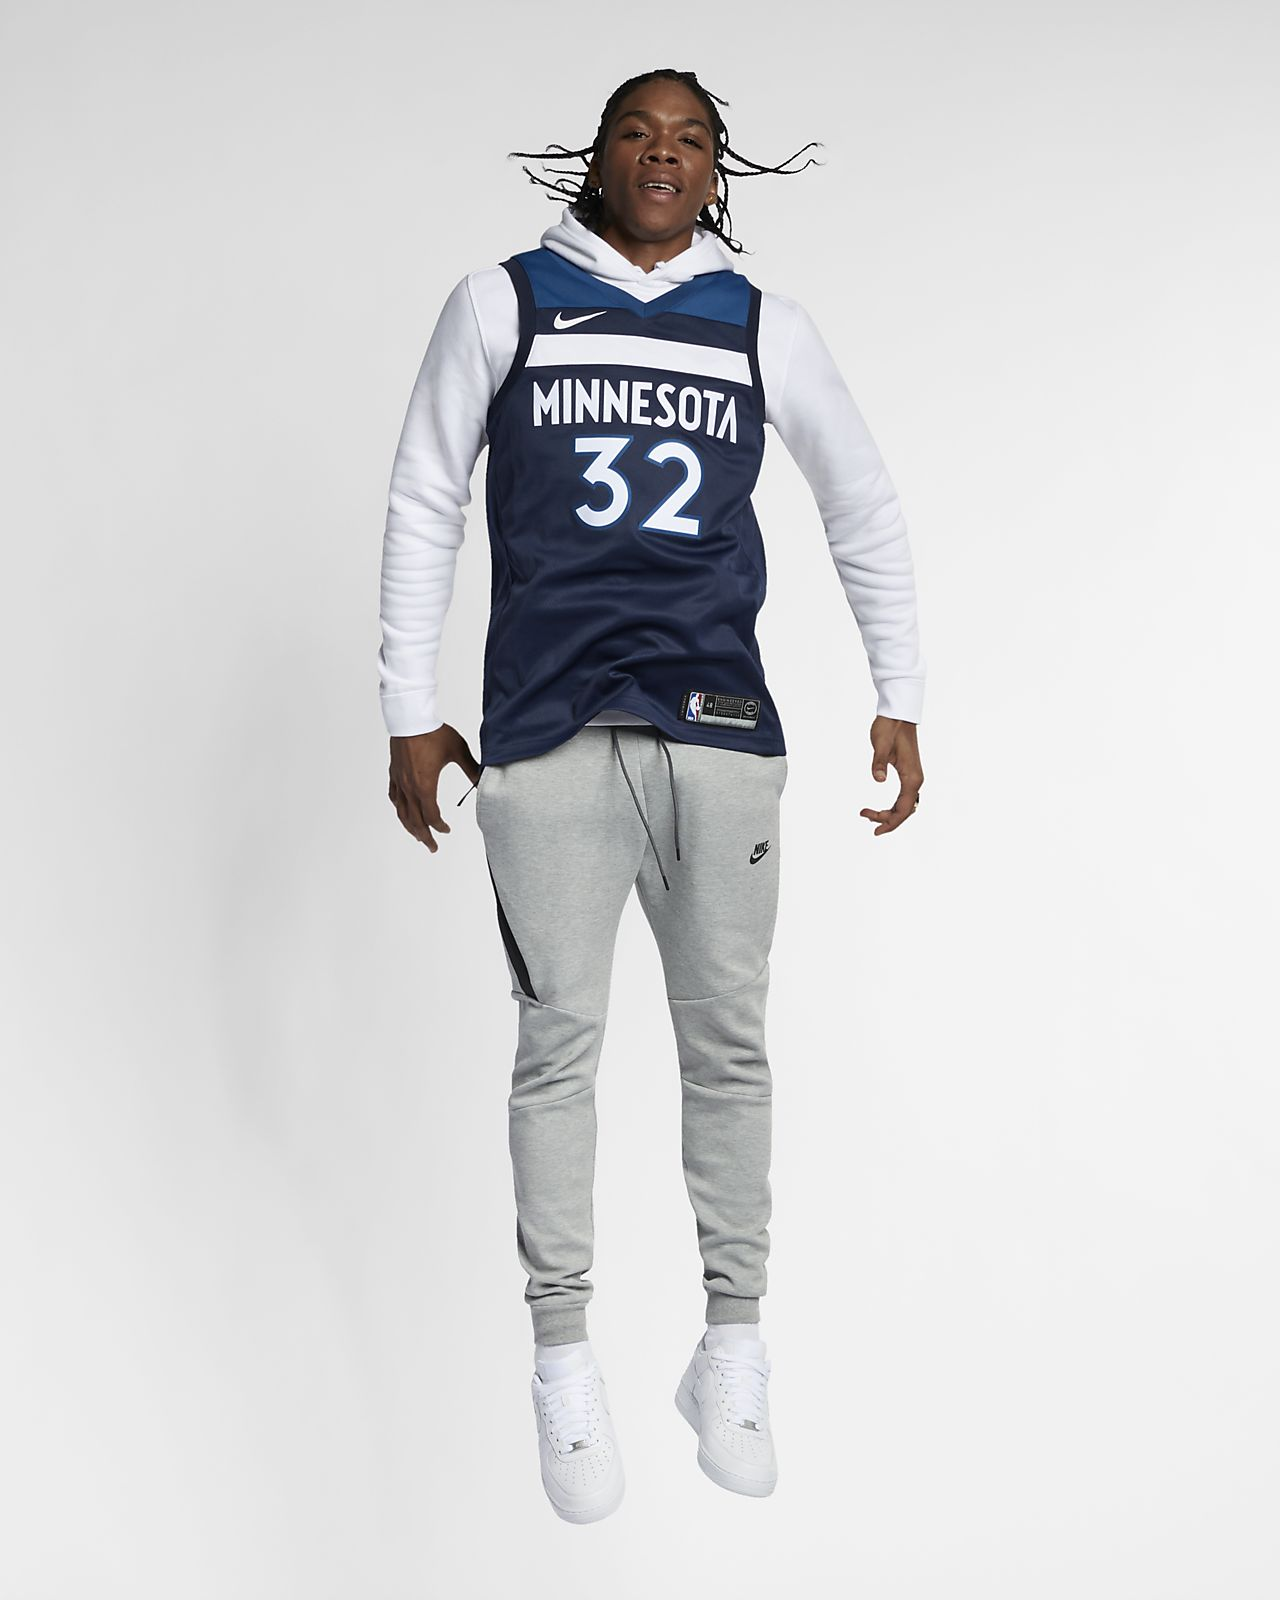 new products 7ea5d 88657 Karl-Anthony Towns Icon Edition Swingman (Minnesota Timberwolves) Men's  Nike NBA Connected Jersey